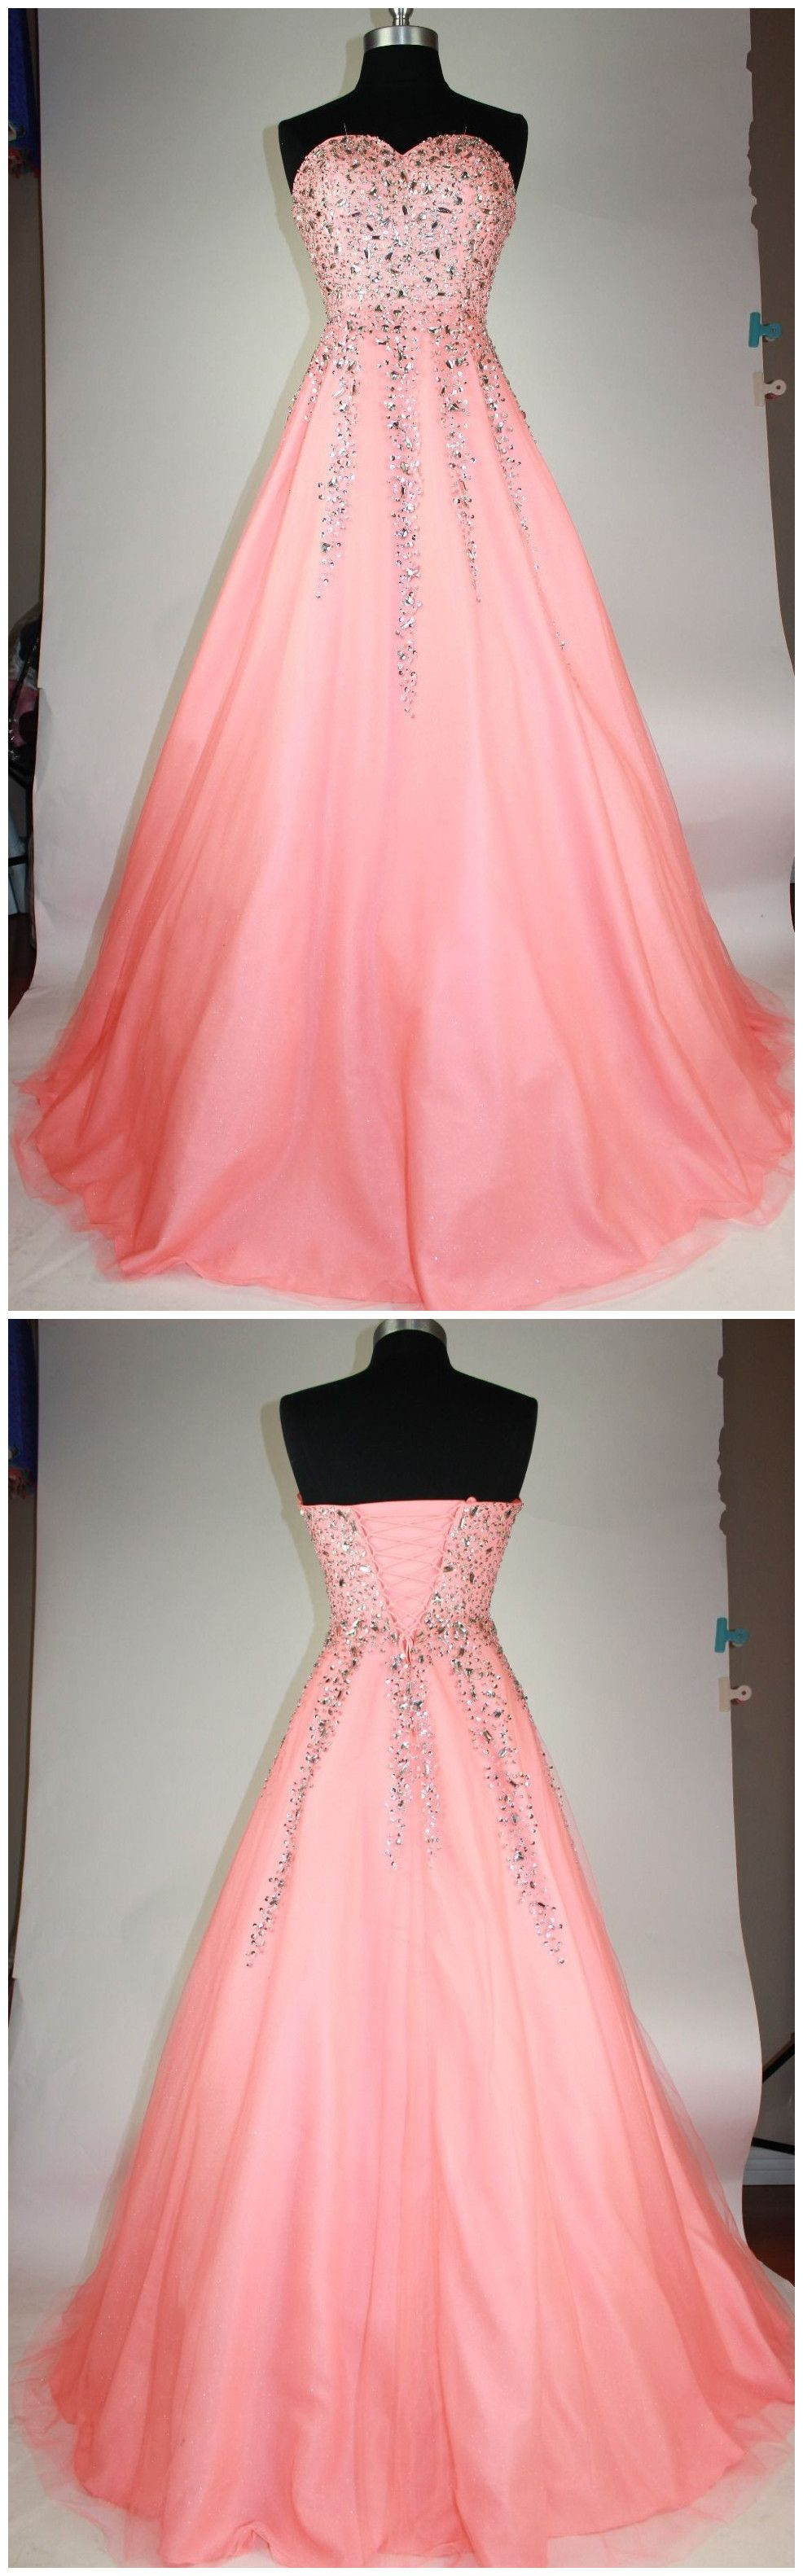 Beading Sweetheart Prom Dress,Long Prom Dresses,Charming Prom Dresses,Evening